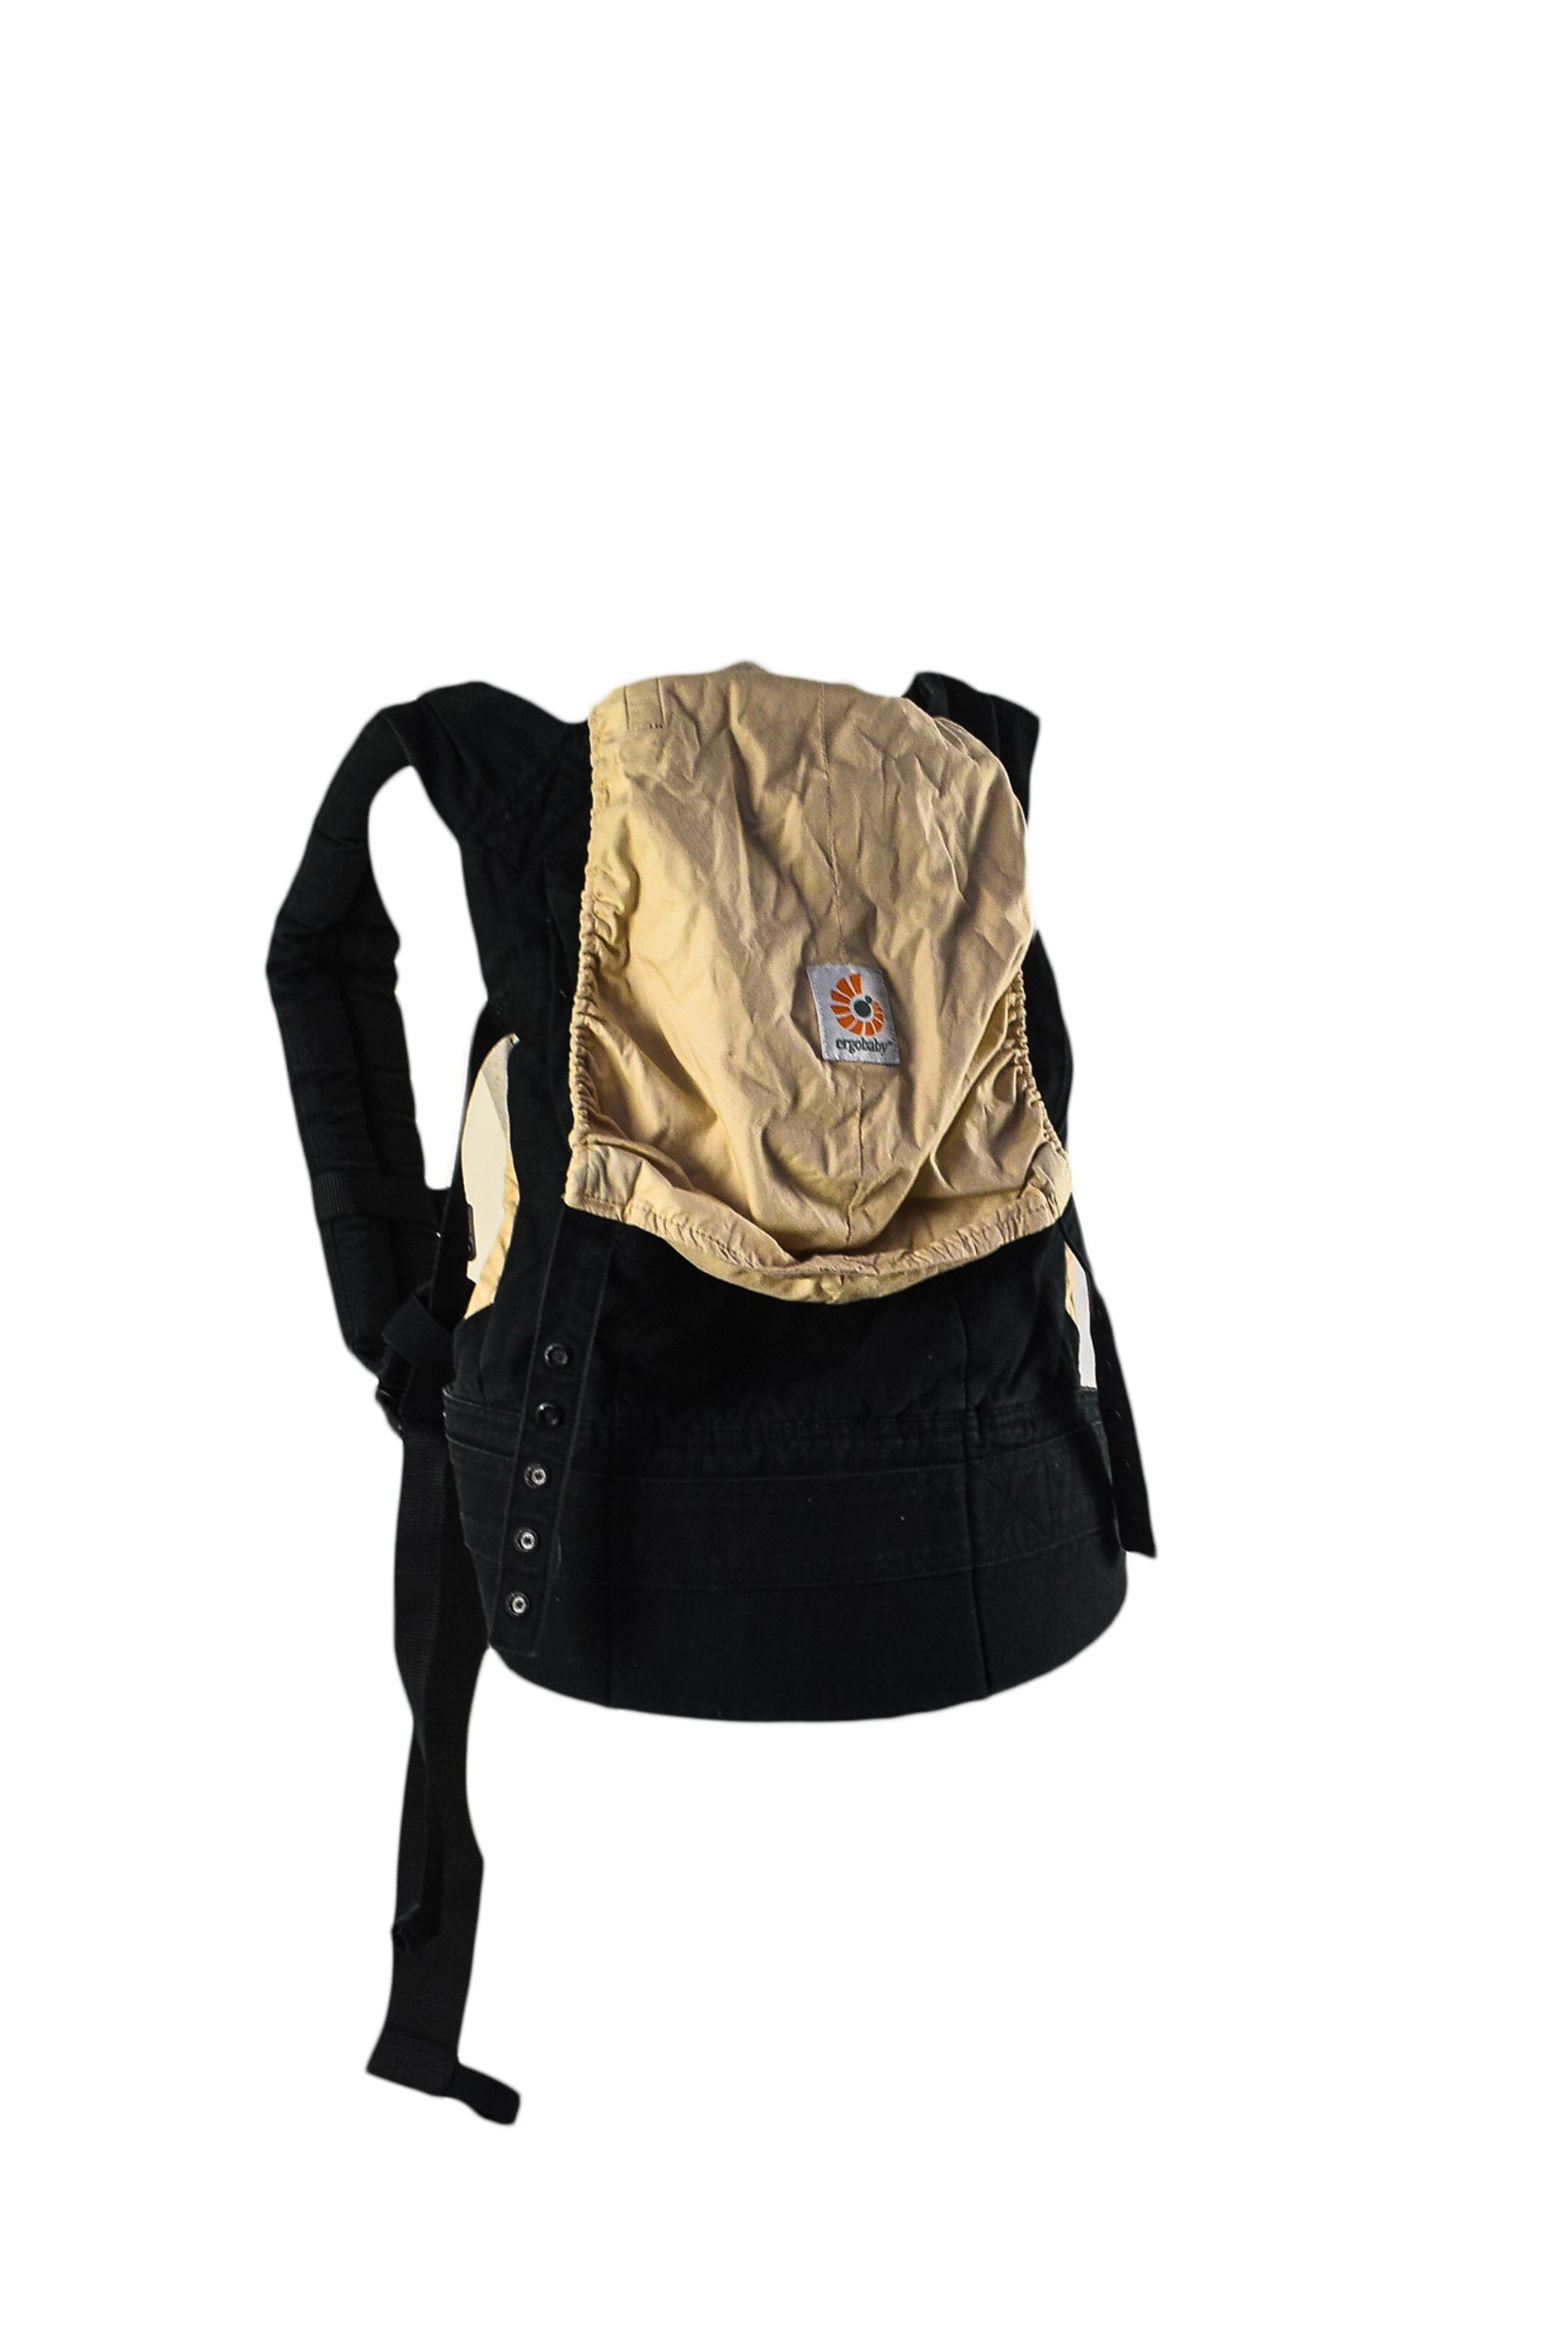 Ergobaby Baby Carrier 0M - 3T (12 lbs - 45 lbs)